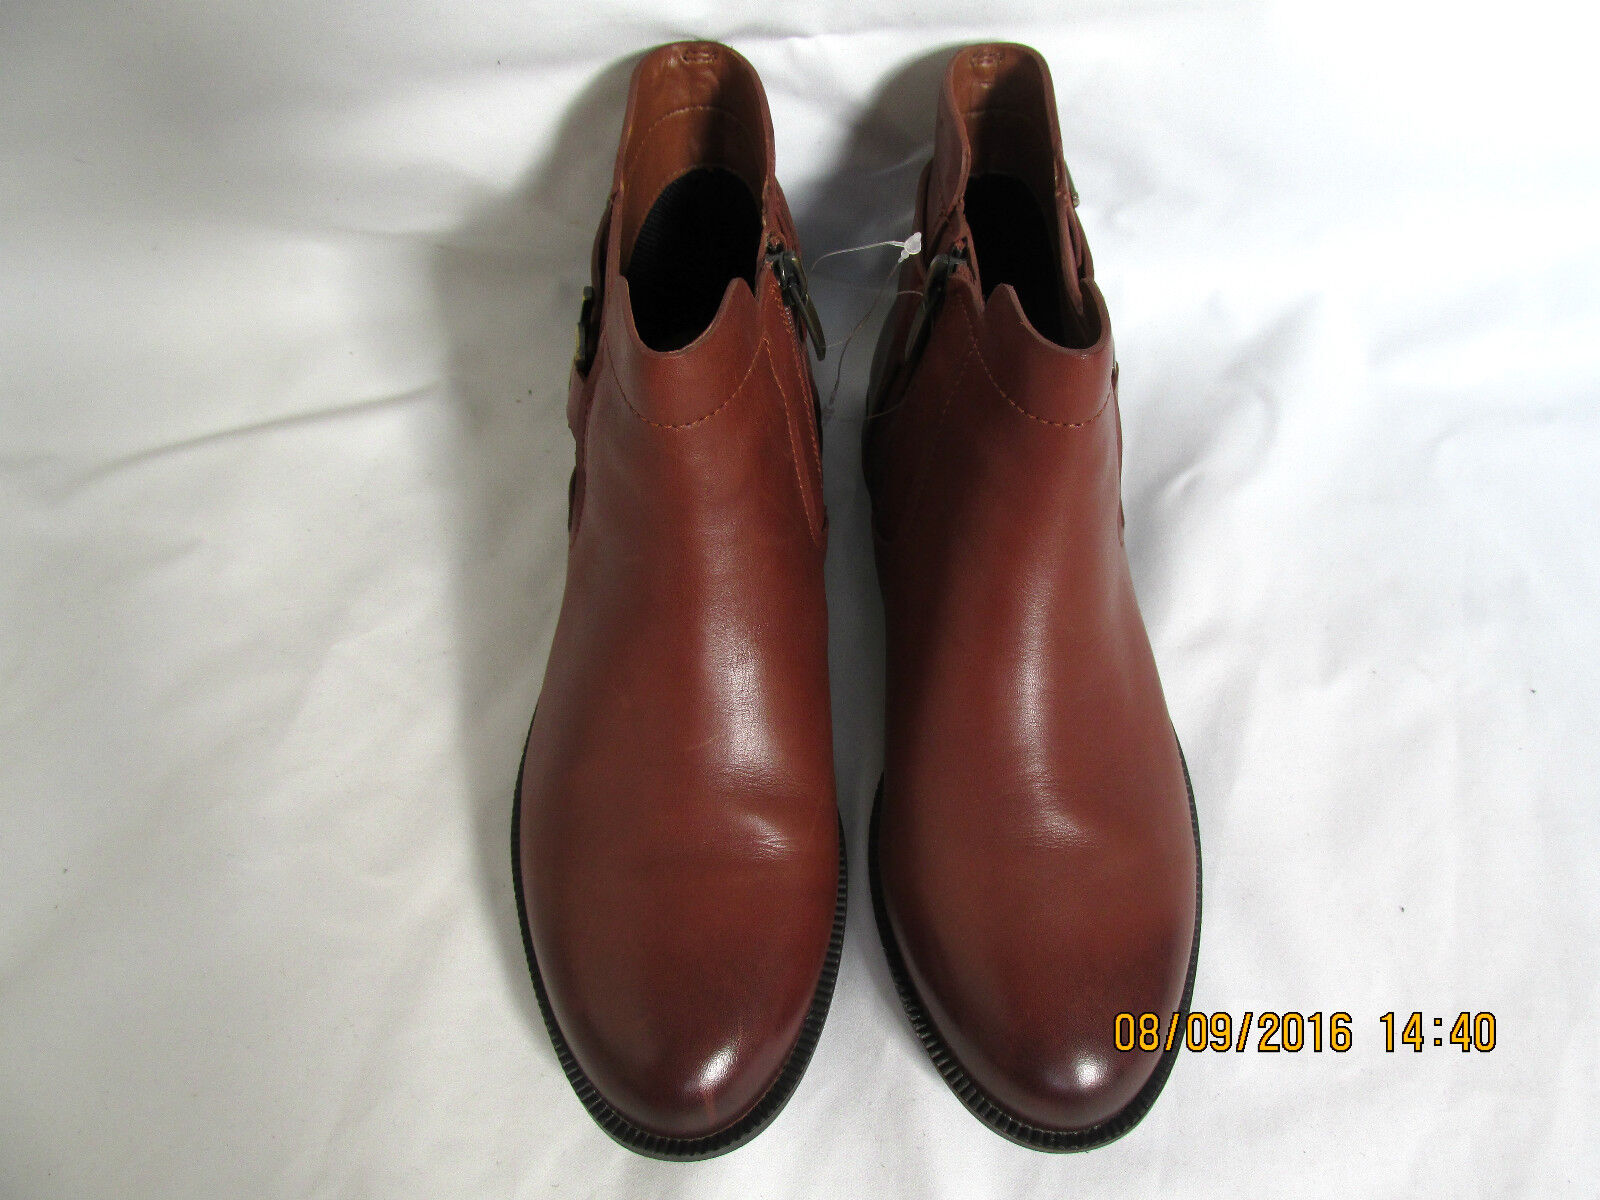 NEW Clarks Womens Leather Chelsea Boots TAN Brown MINT JAM GORETEX Ankle boots